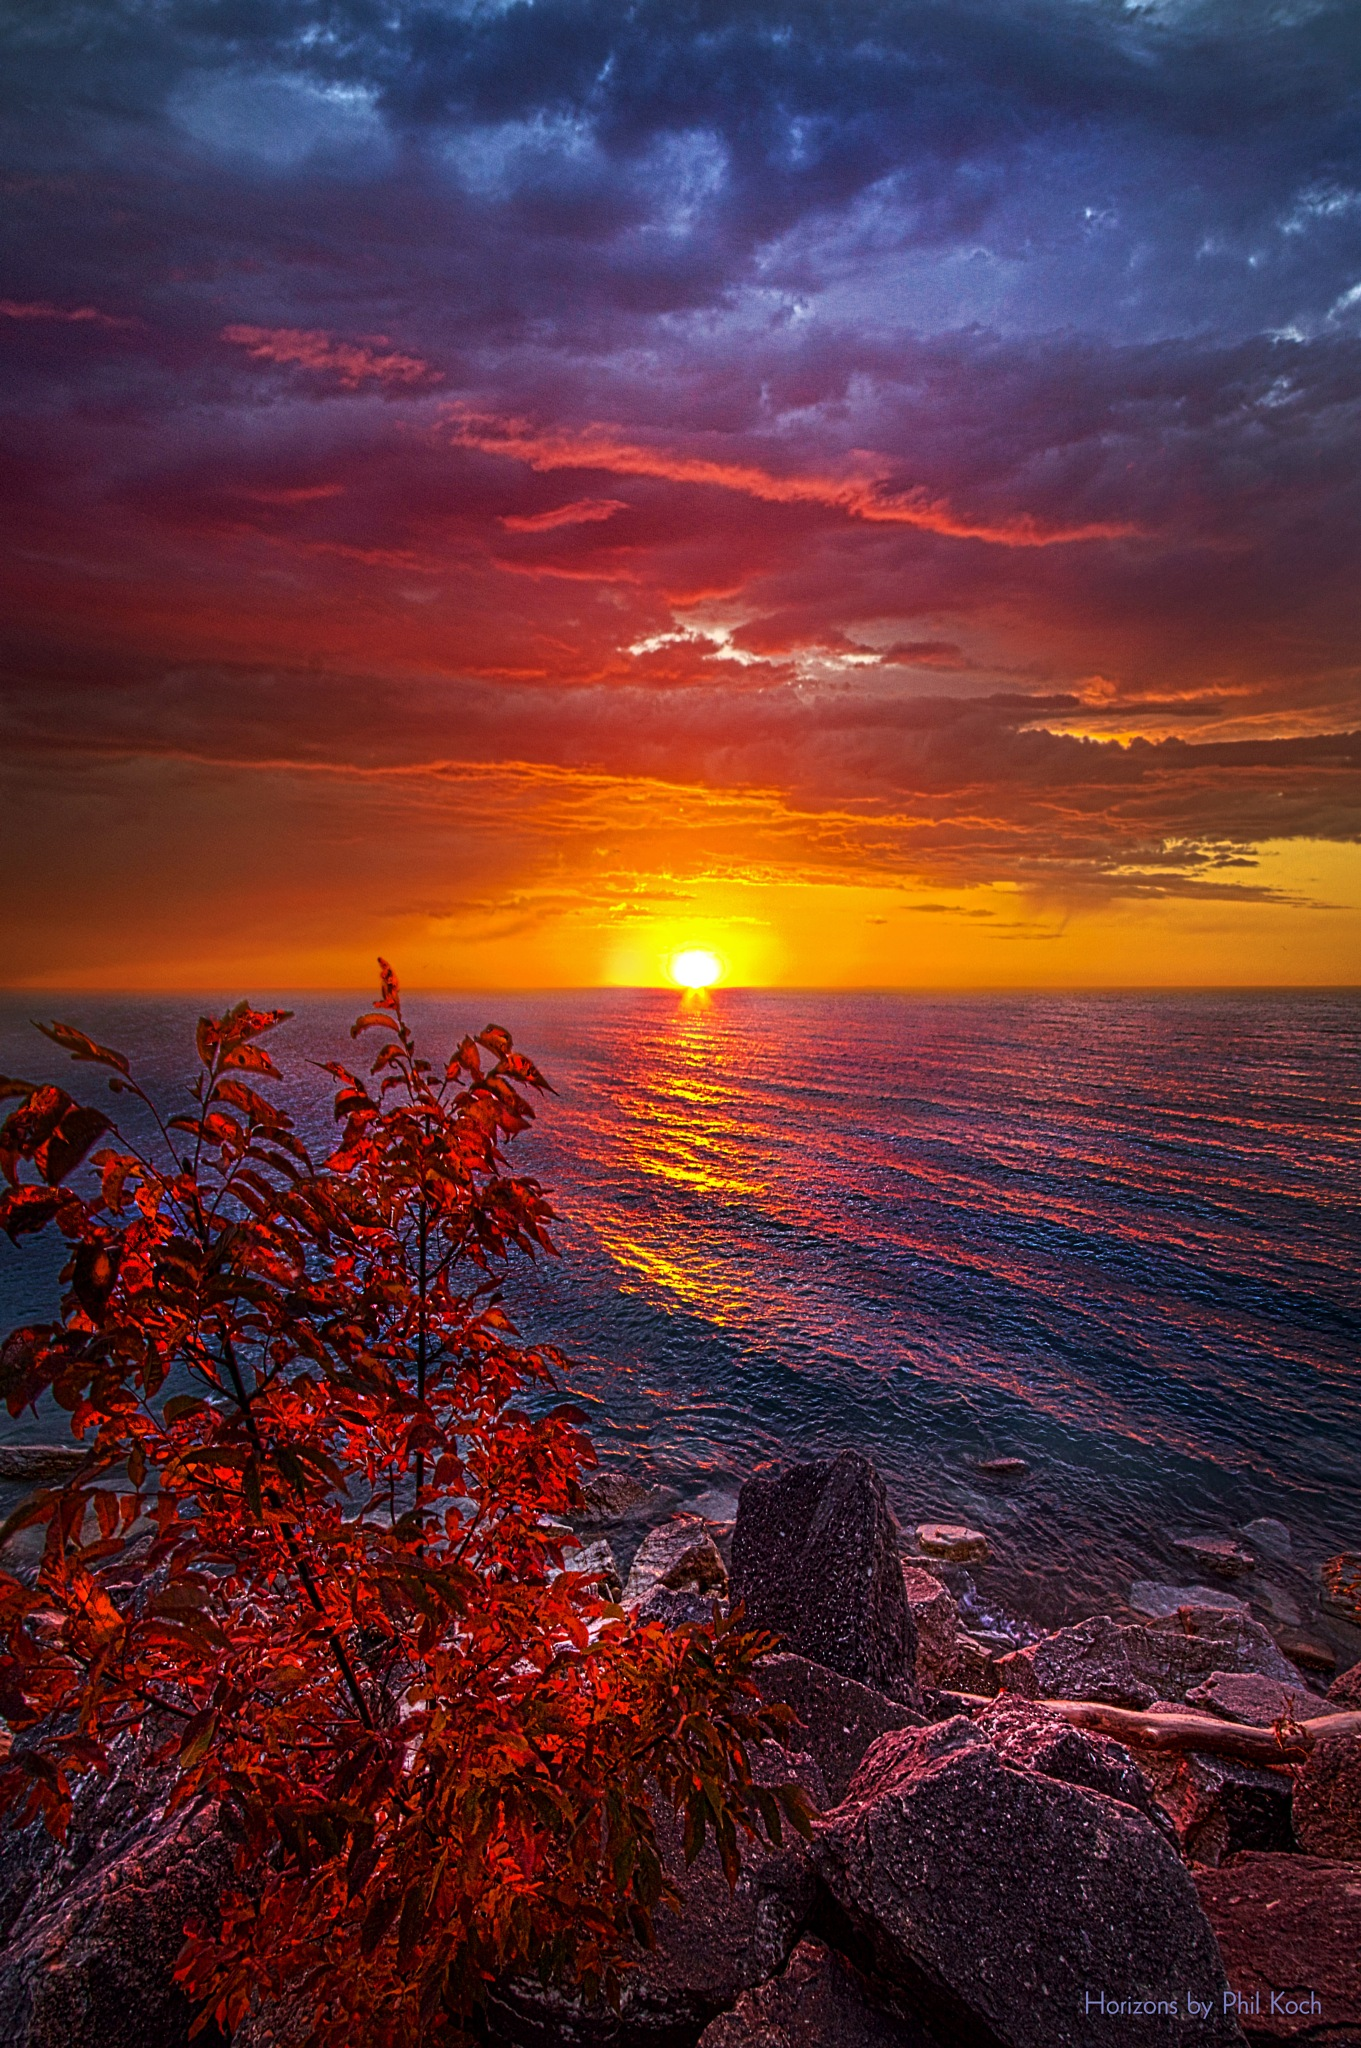 Once Again by PhilKoch